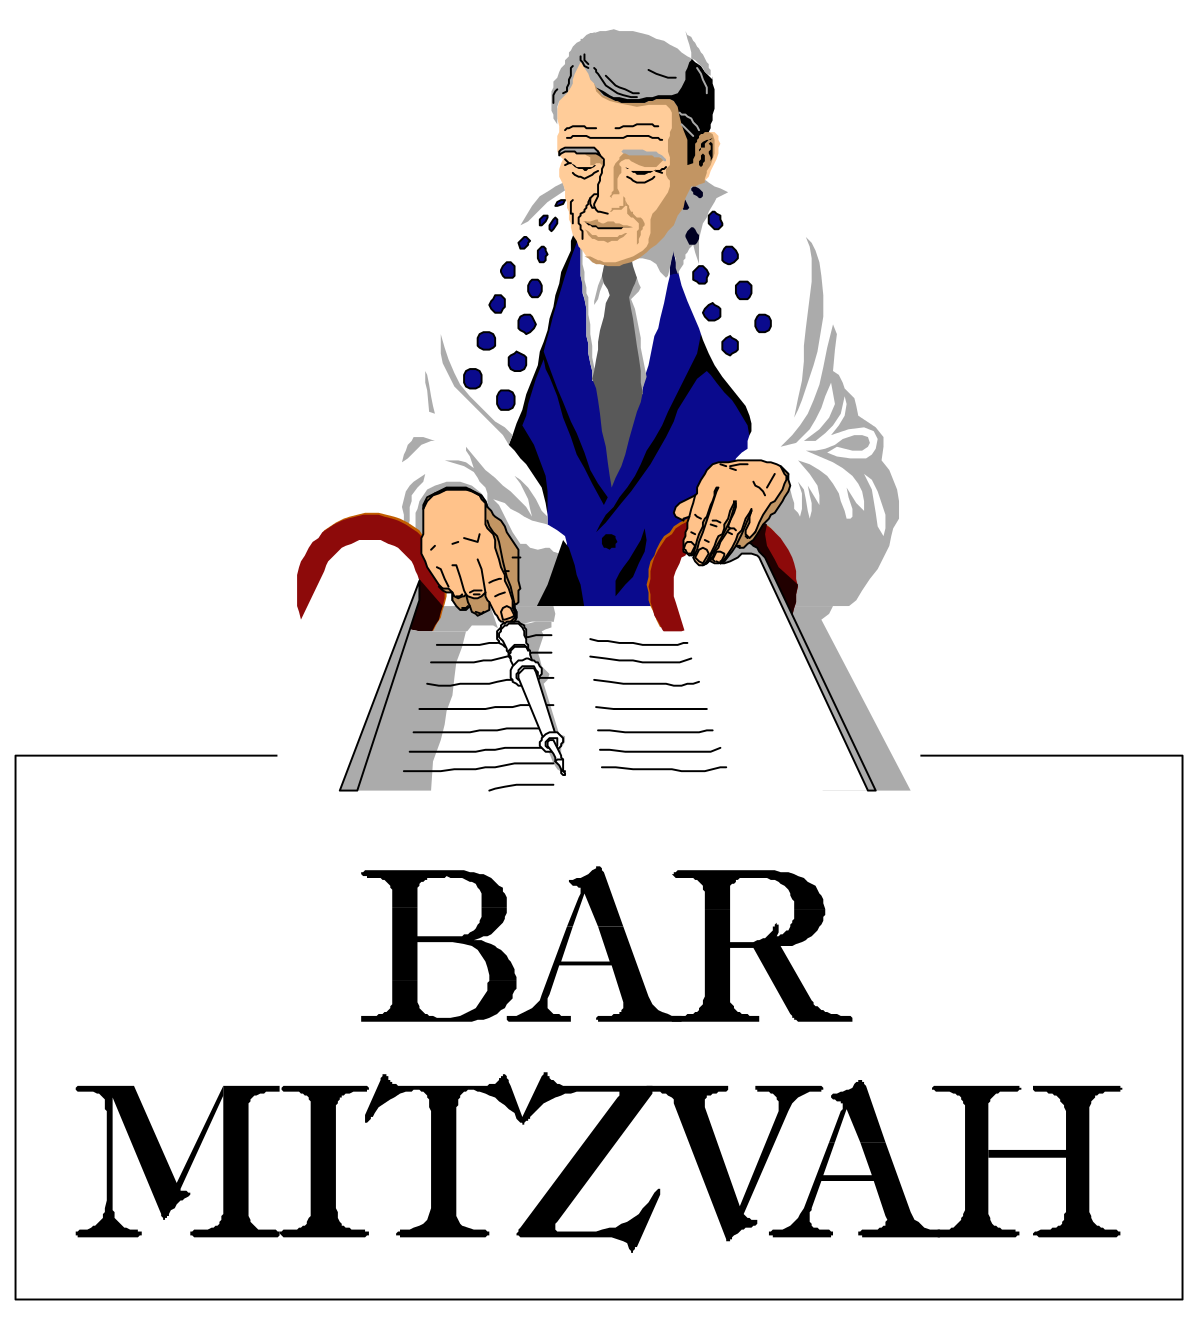 Vector Illustration People Men Characters Cartoon Business Symbol One Person Businessman Occupation